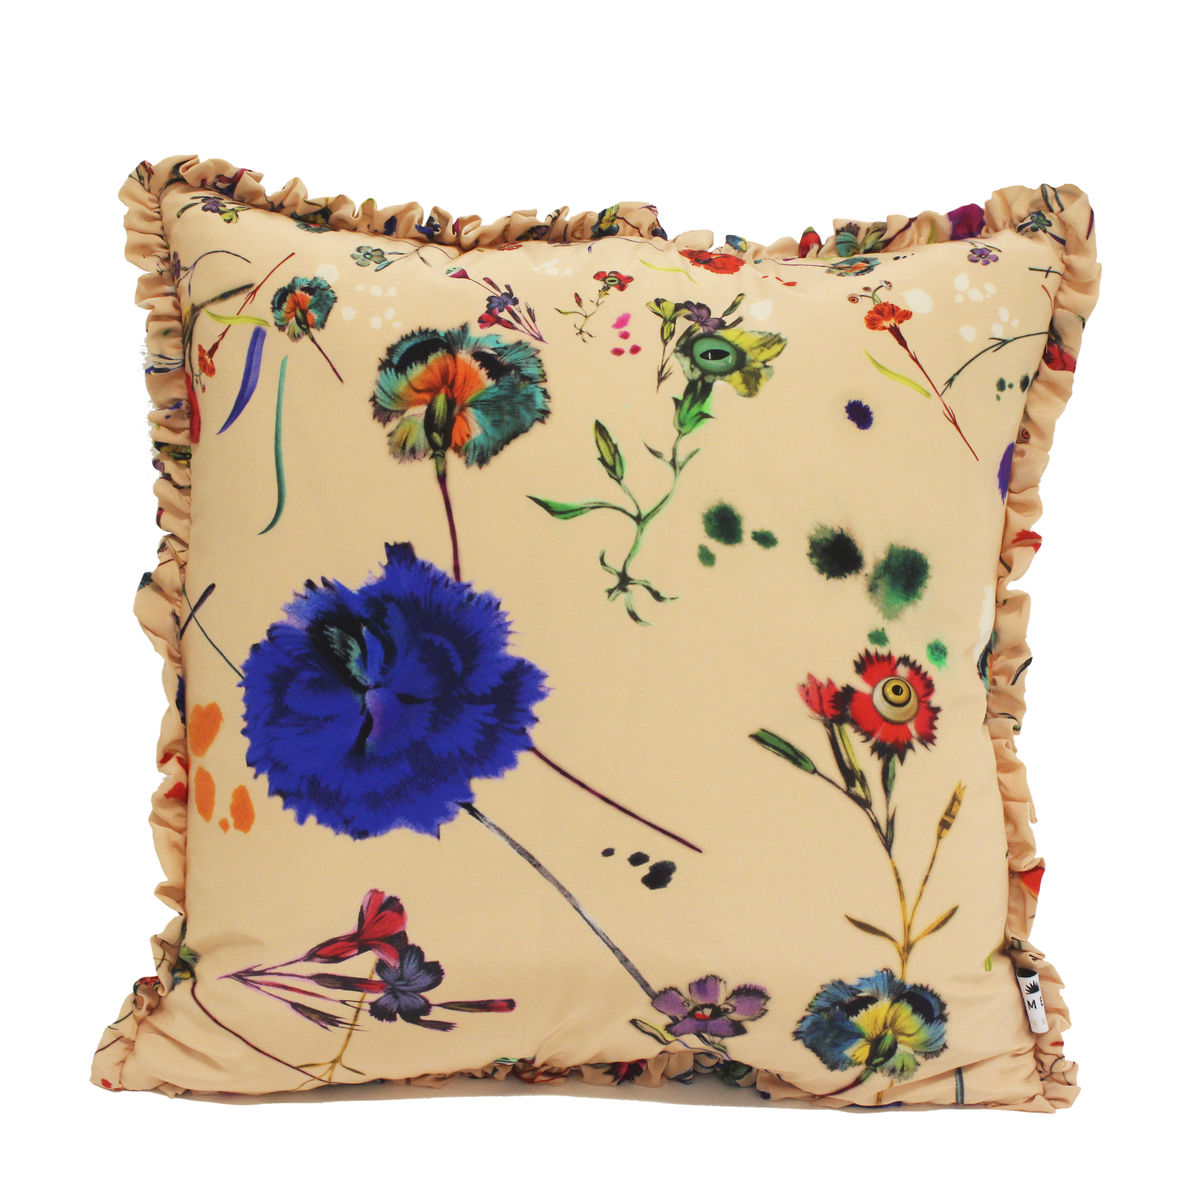 silk frill cushion, Floral explosion, 50 x 50 cm - product images  of